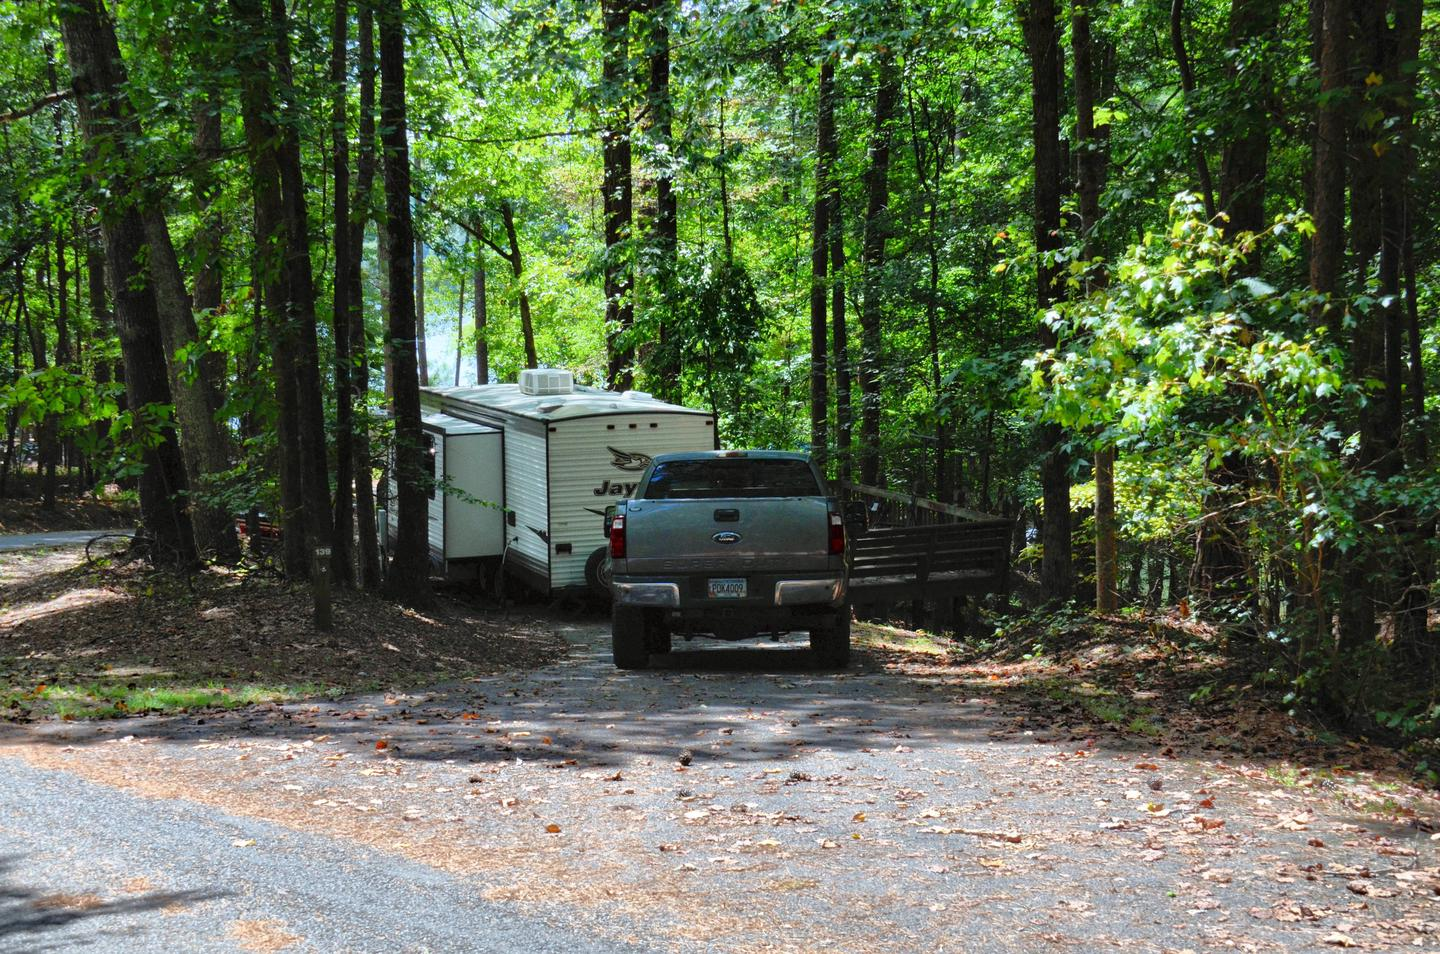 Pull-thru entrance, utilities clearance.McKinney Campground, campsite 139.